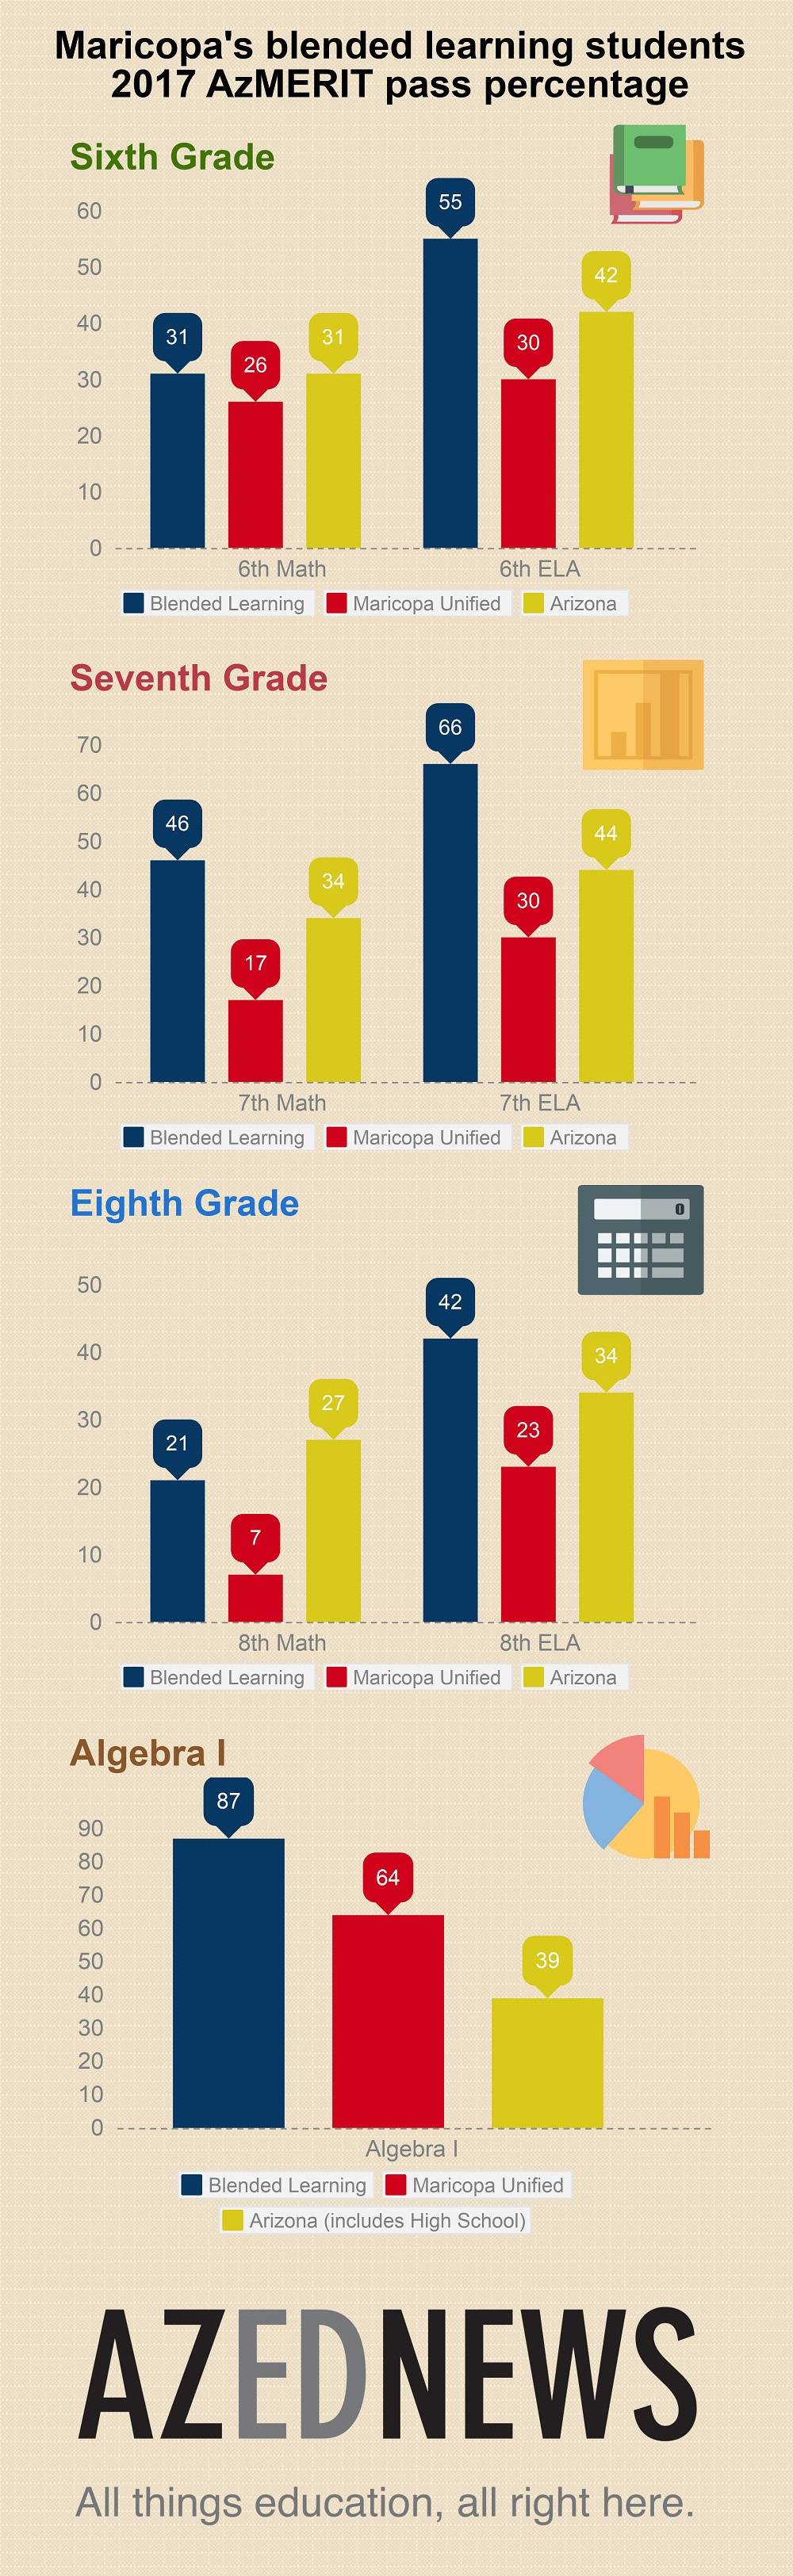 Blended Learning boosts achievement, collaboration and creativity 1000-AZEdNews-Maricopa-Unified-Blended-Learning-2017-AzMERIT-Infographic